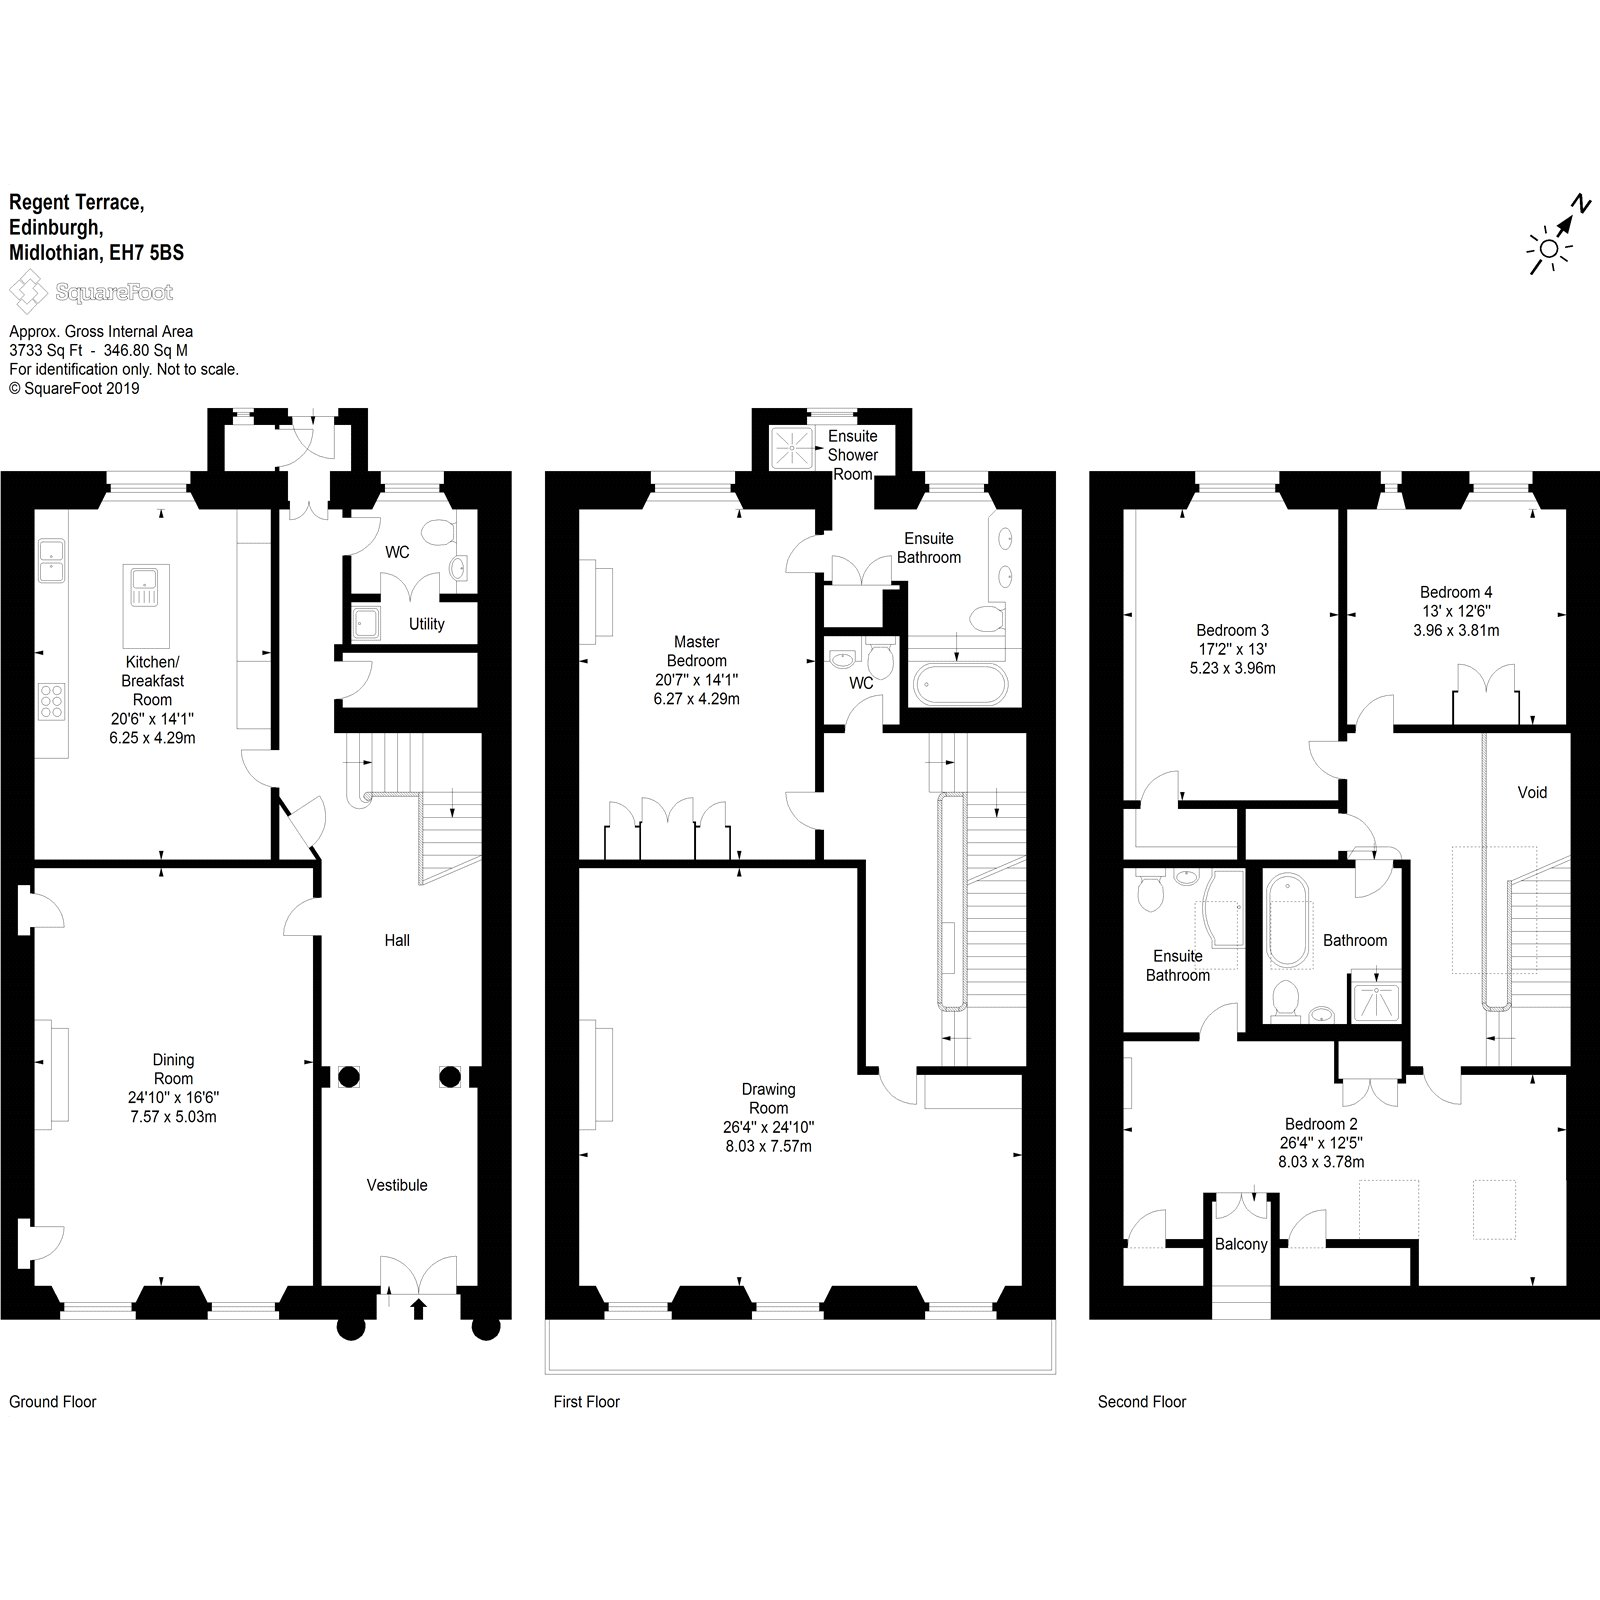 Floorplans for Regent Terrace, Edinburgh, Midlothian, EH7